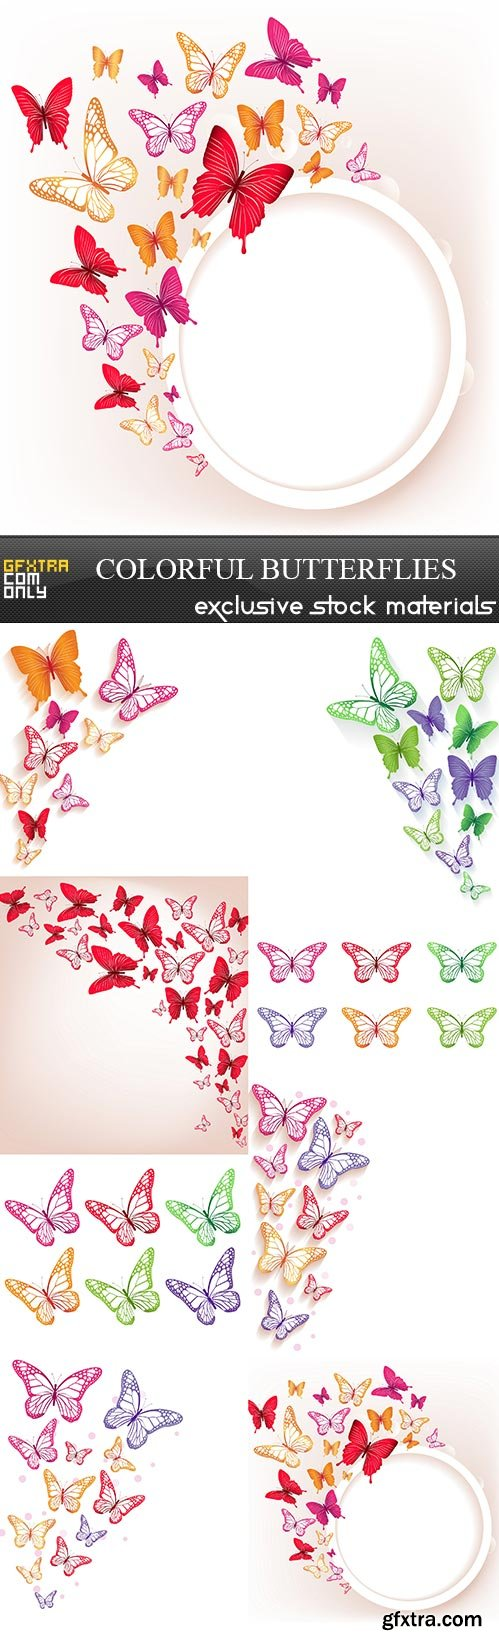 Colorful Butterflies, 8  x  UHQ JPEG